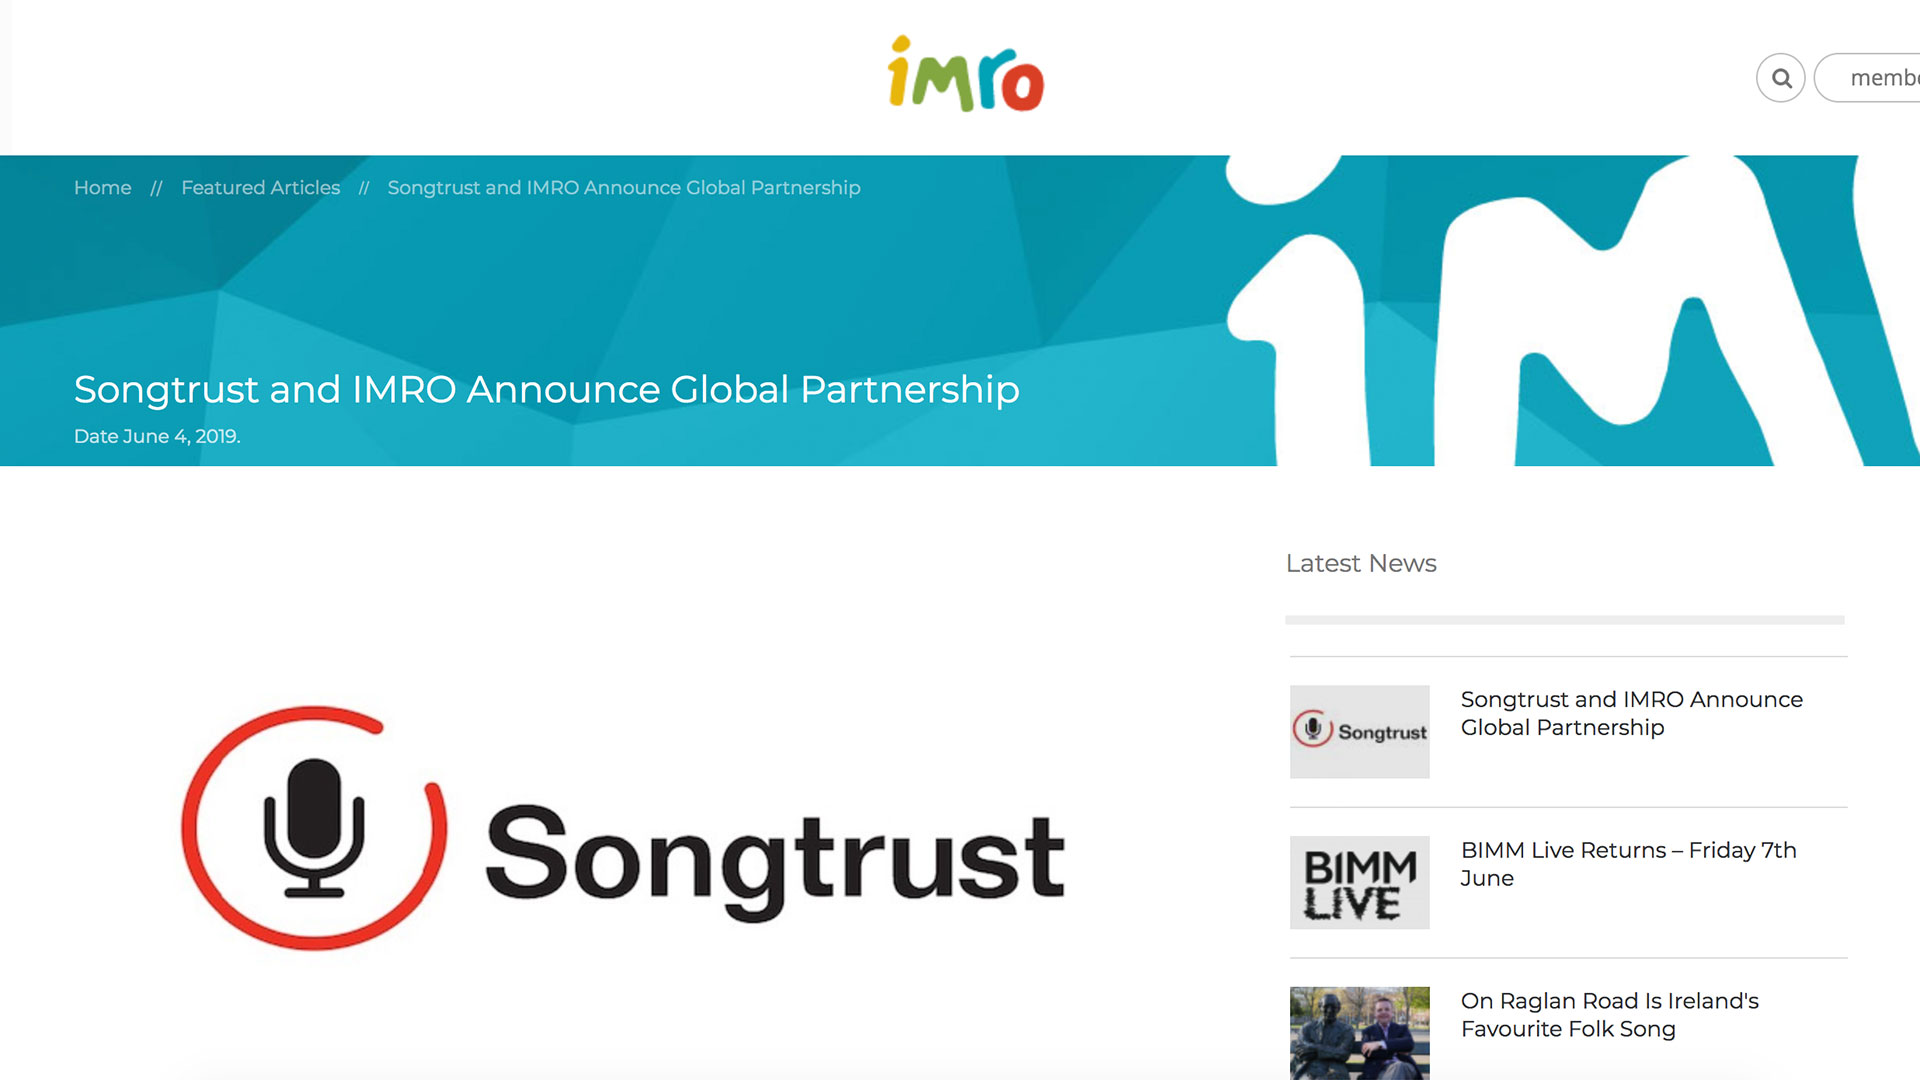 Fairness Rocks News Songtrust and IMRO Announce Global Partnership